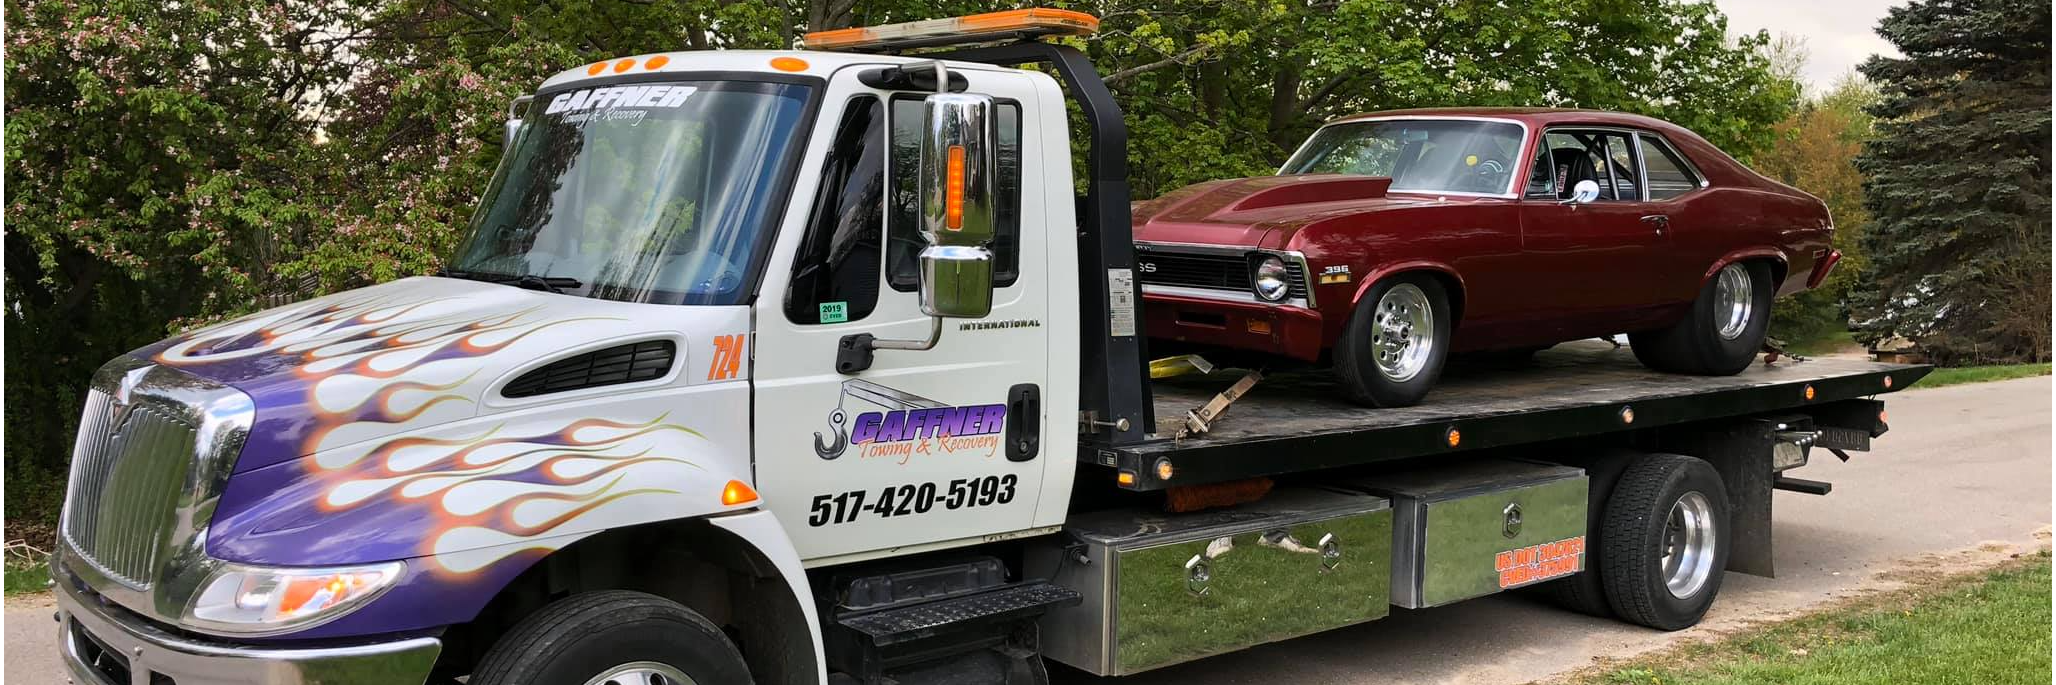 Gaffner Towing & Recovery Towing.com Profile Banner